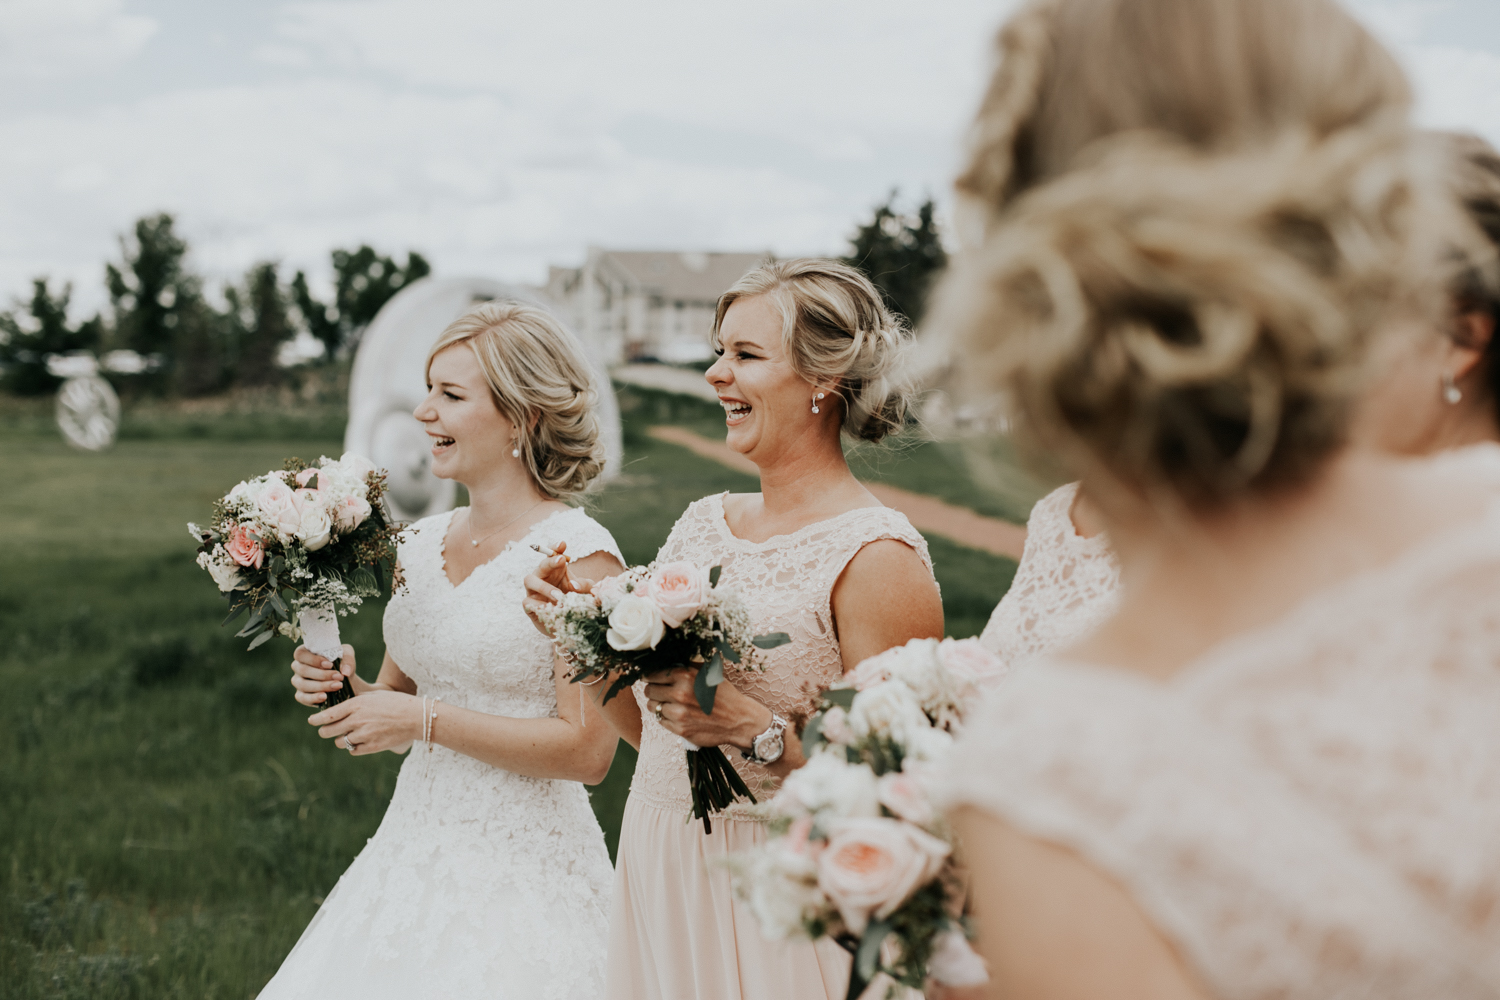 norland-estate-wedding-lethbridge-photography-love-and-be-loved-photographer-picture-image-photo-95.jpg